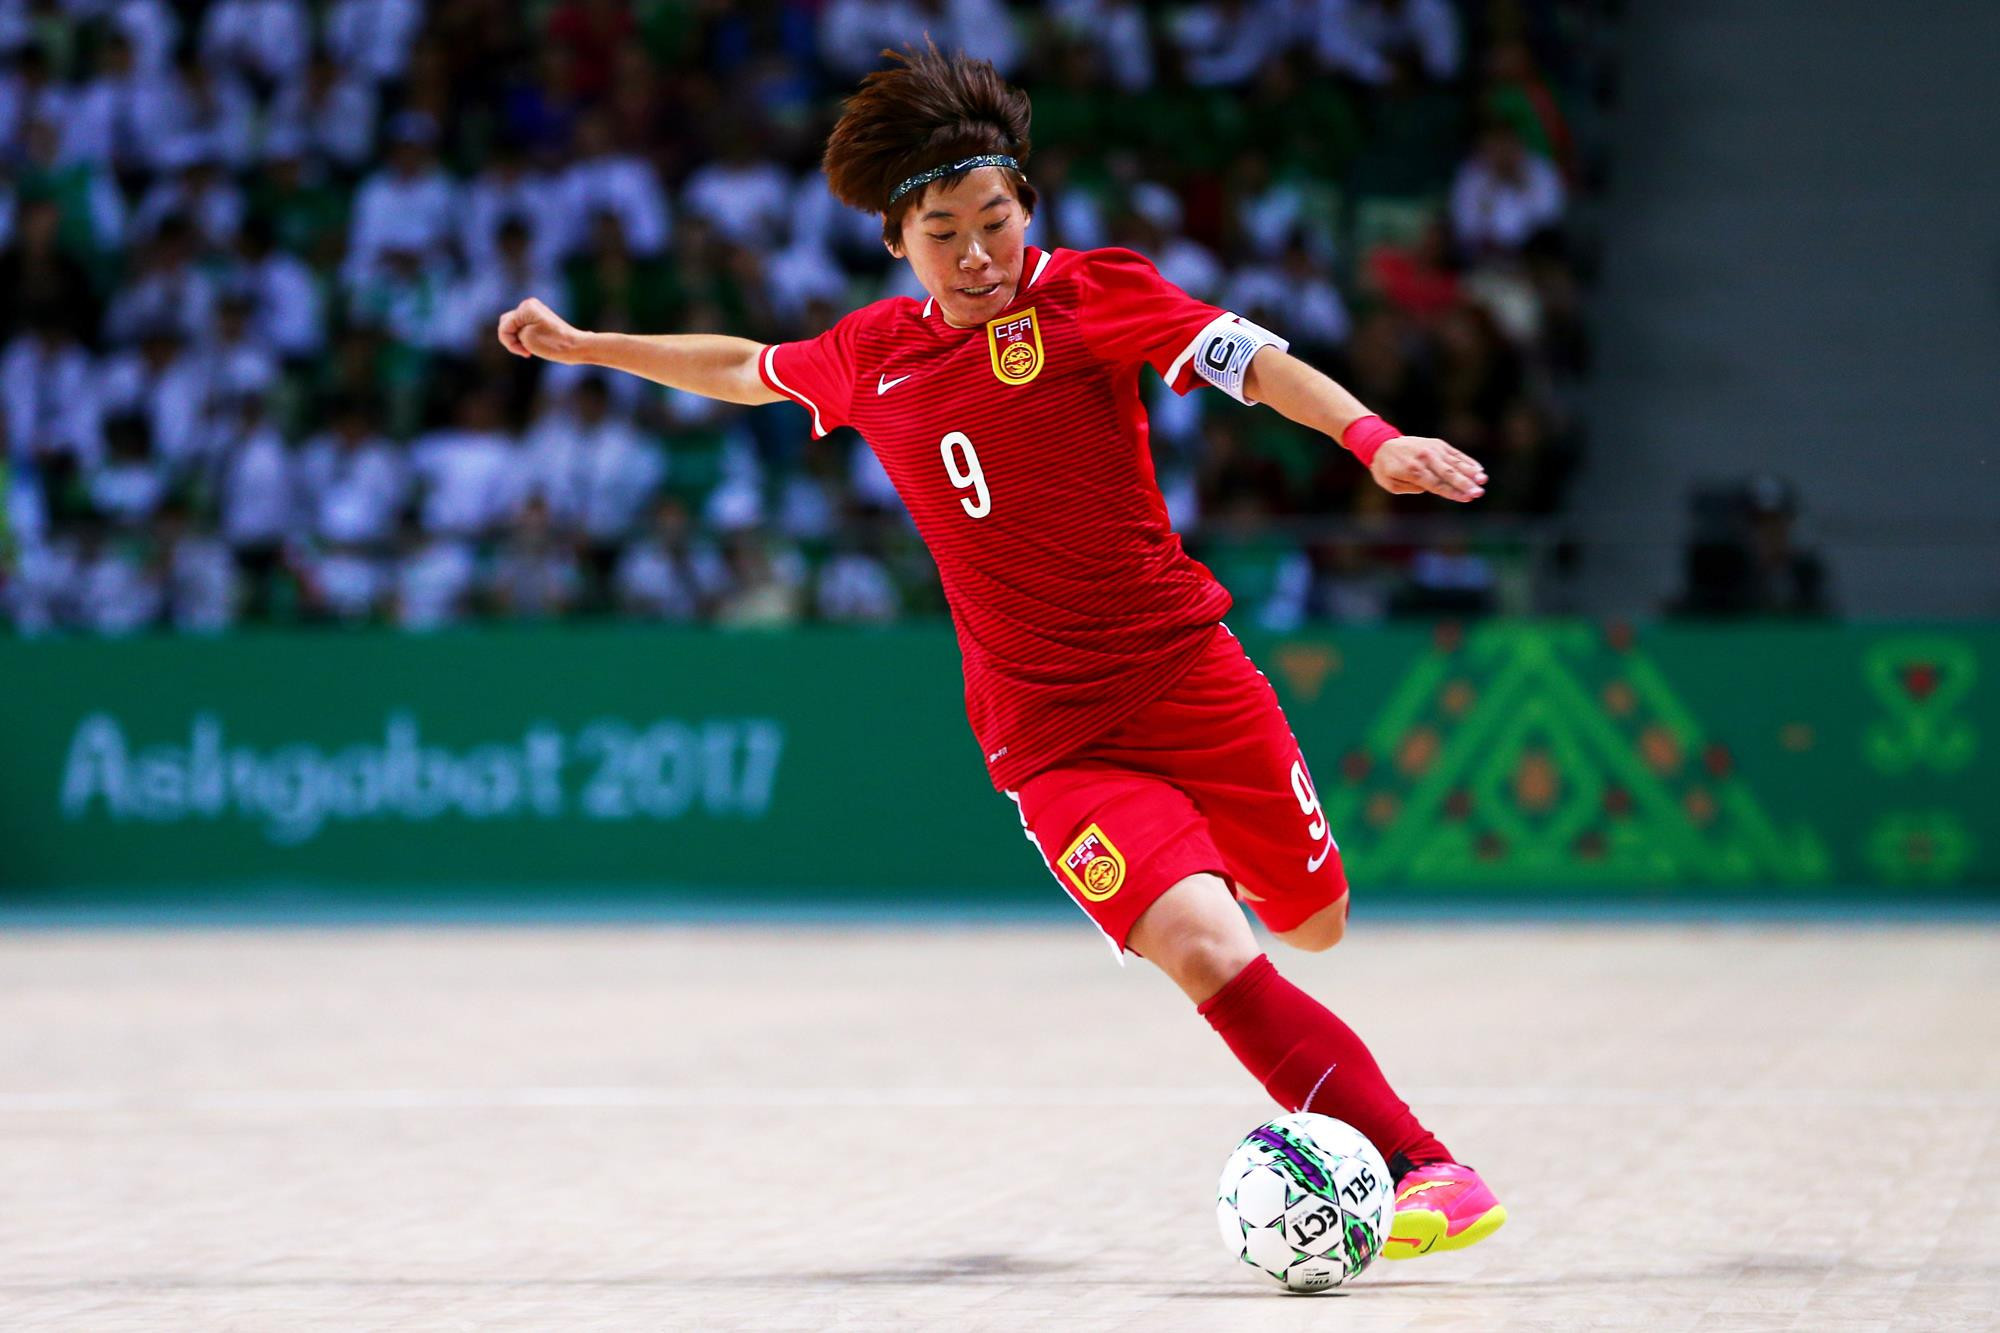 China lost 4-1 to Thailand in the semi-finals of the women's futsal competition ©Ashgabat 2017/Facebook